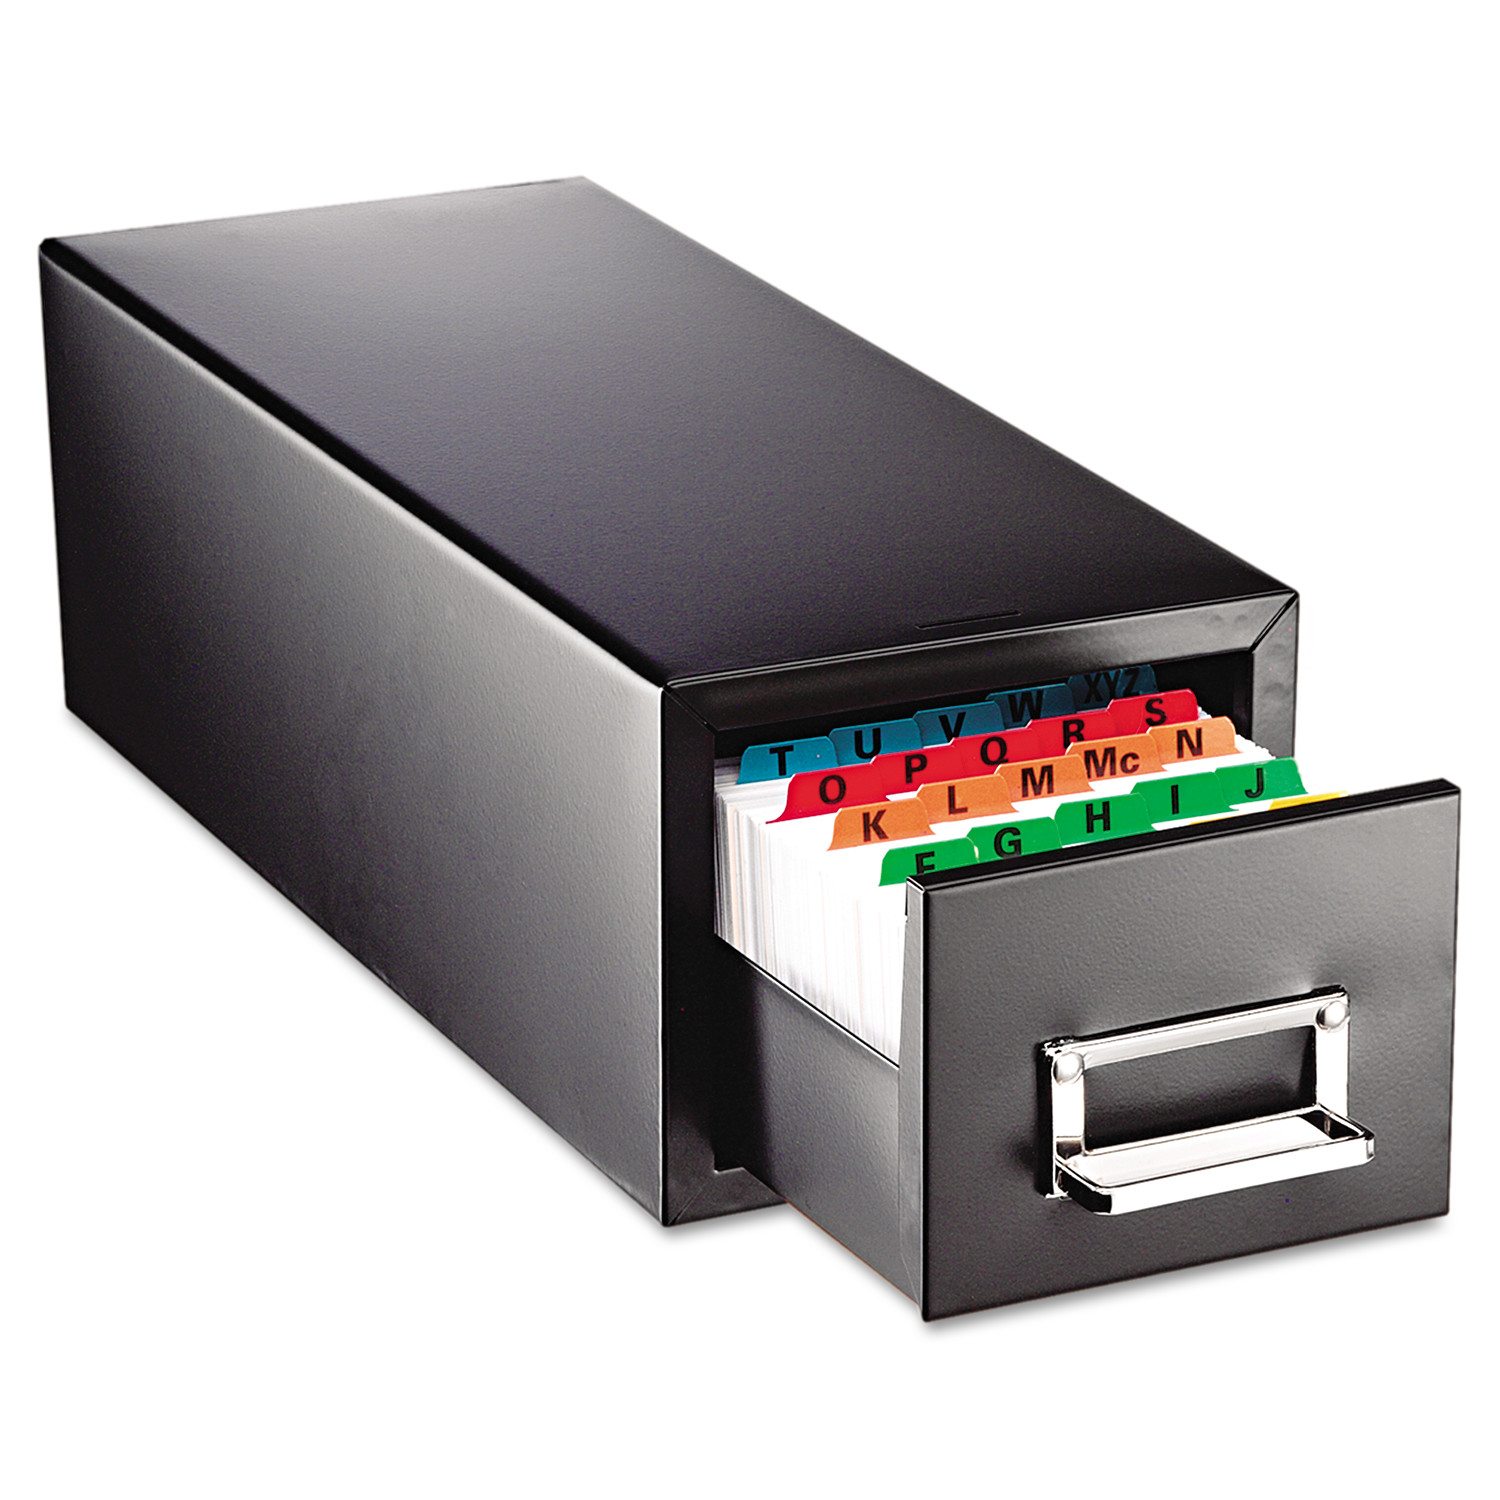 SteelMaster Drawer Card Cabinet Holds 1,500 5 x 8 cards, 9 7/16 x 16 x 7 1/2 -MMF263F5816SBLA